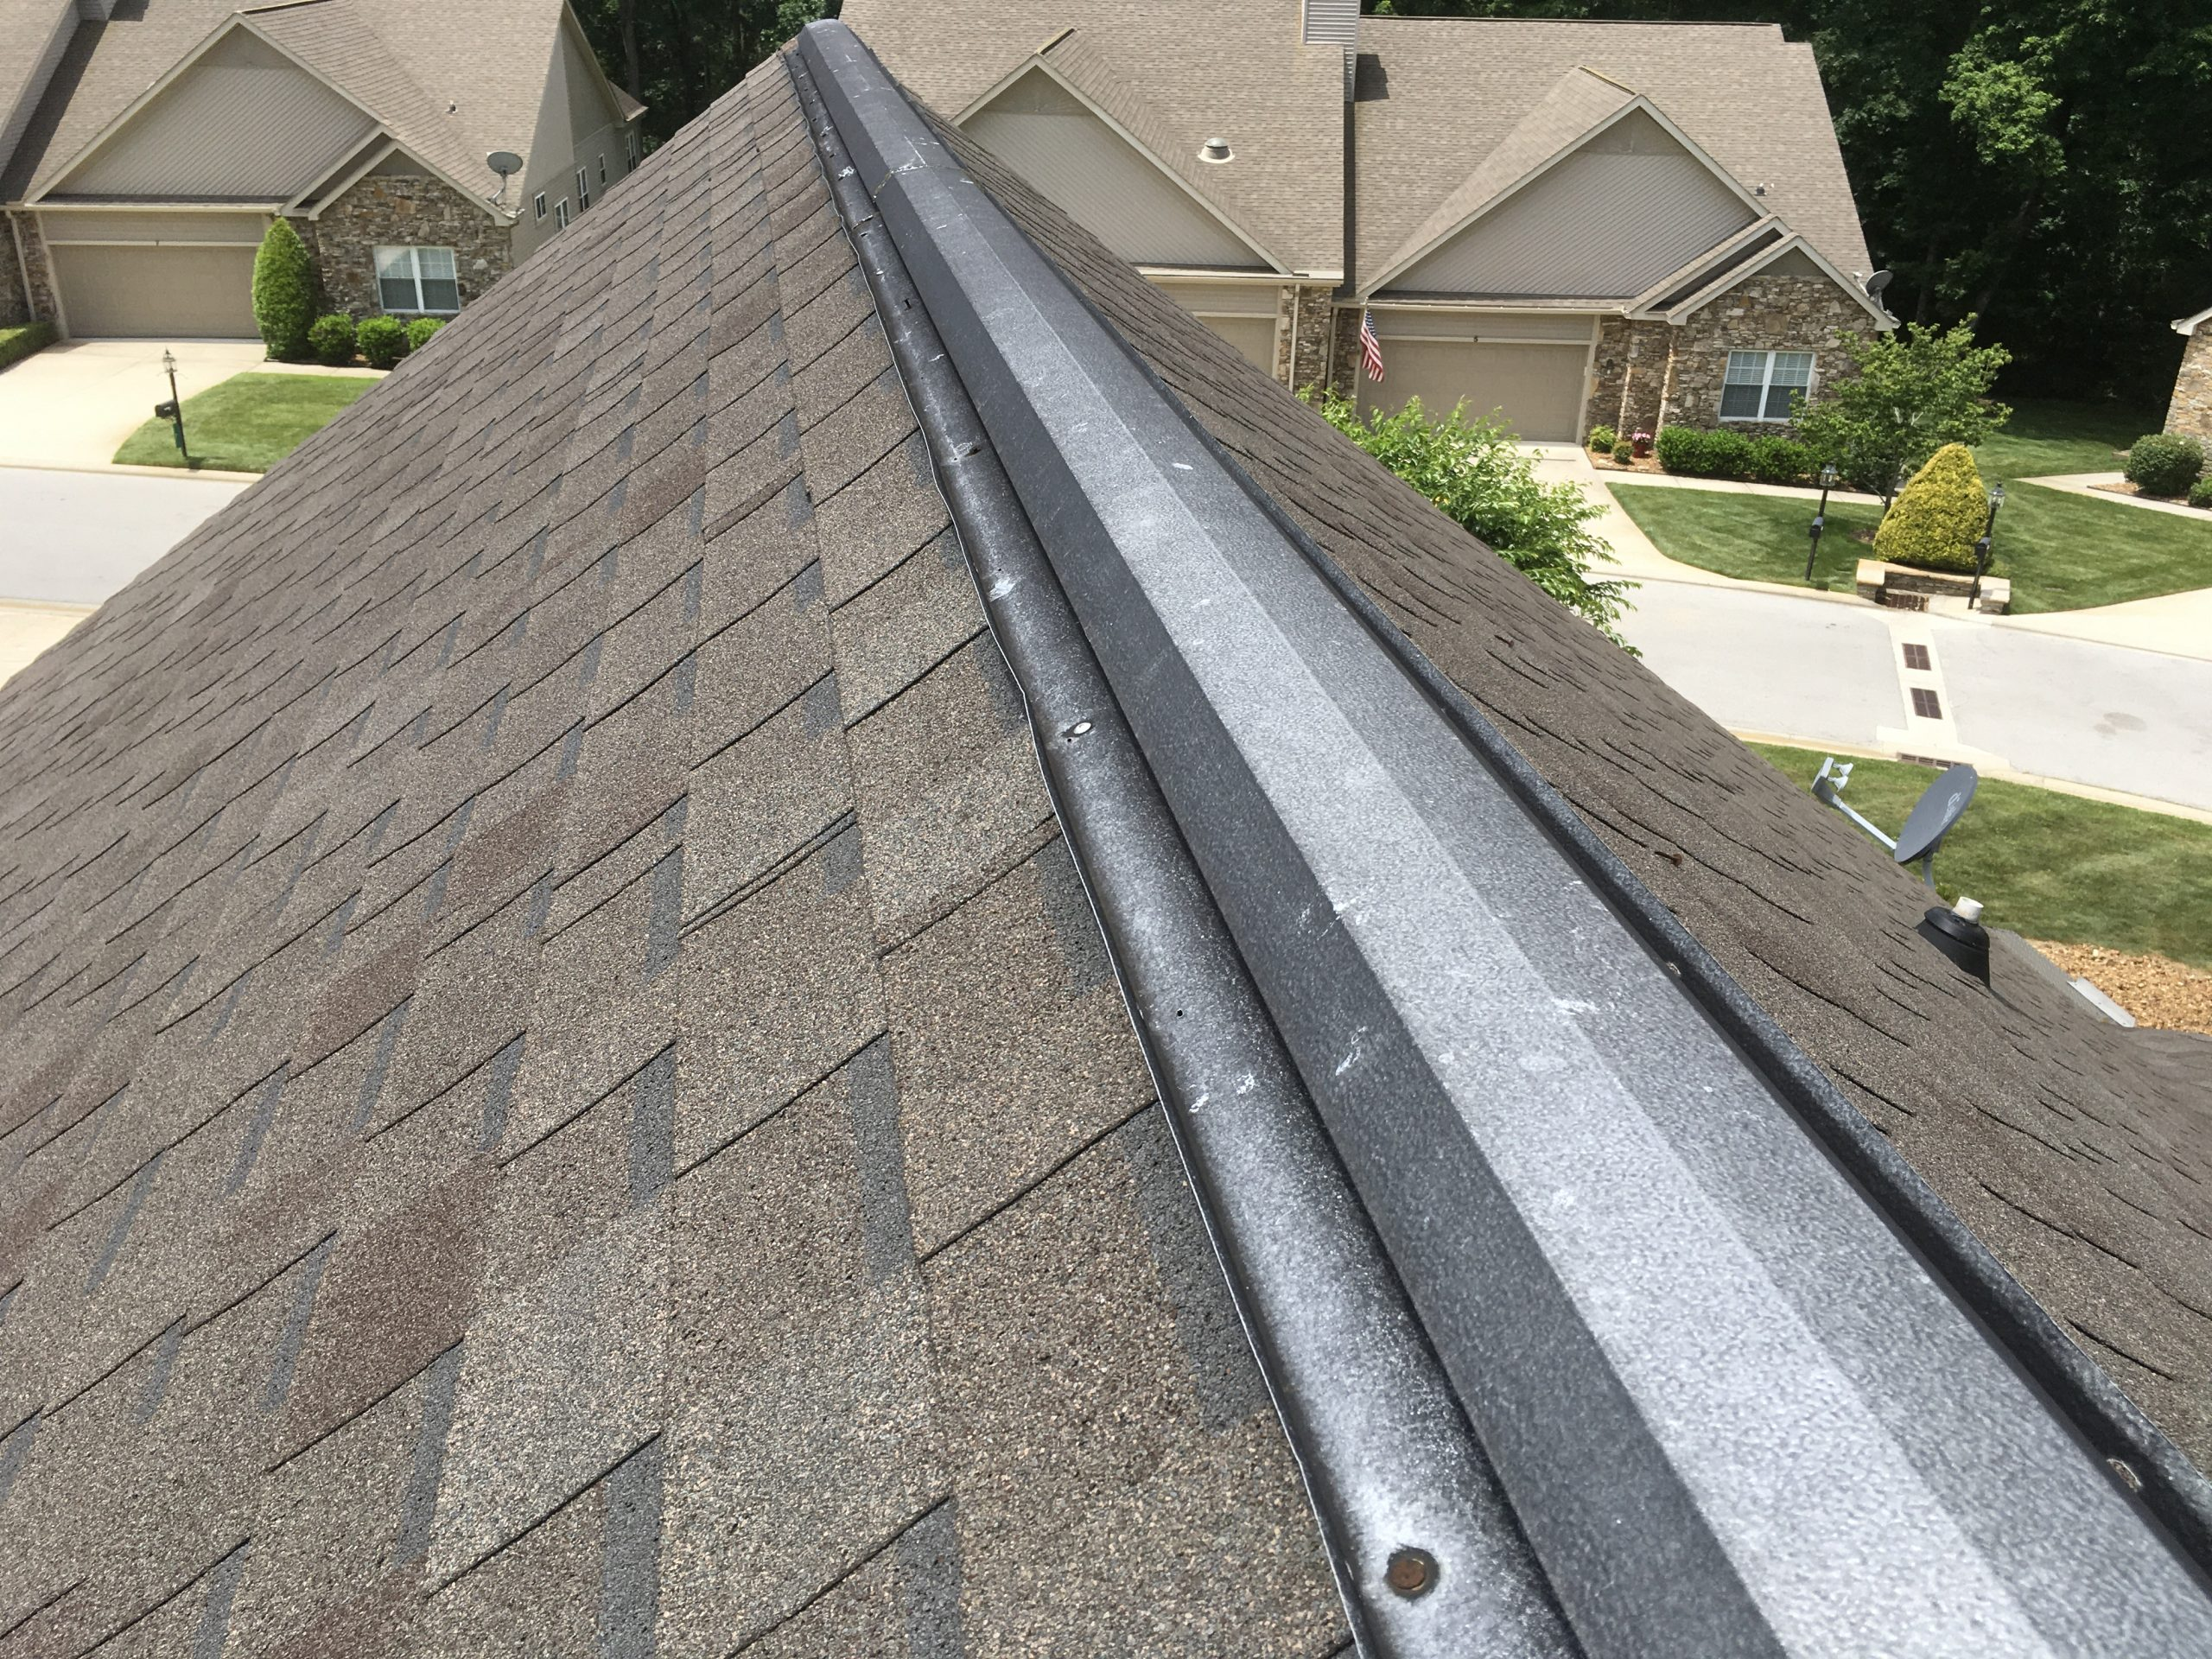 this is a picture of an old metal ridge vent on an old roof in knoxville tn